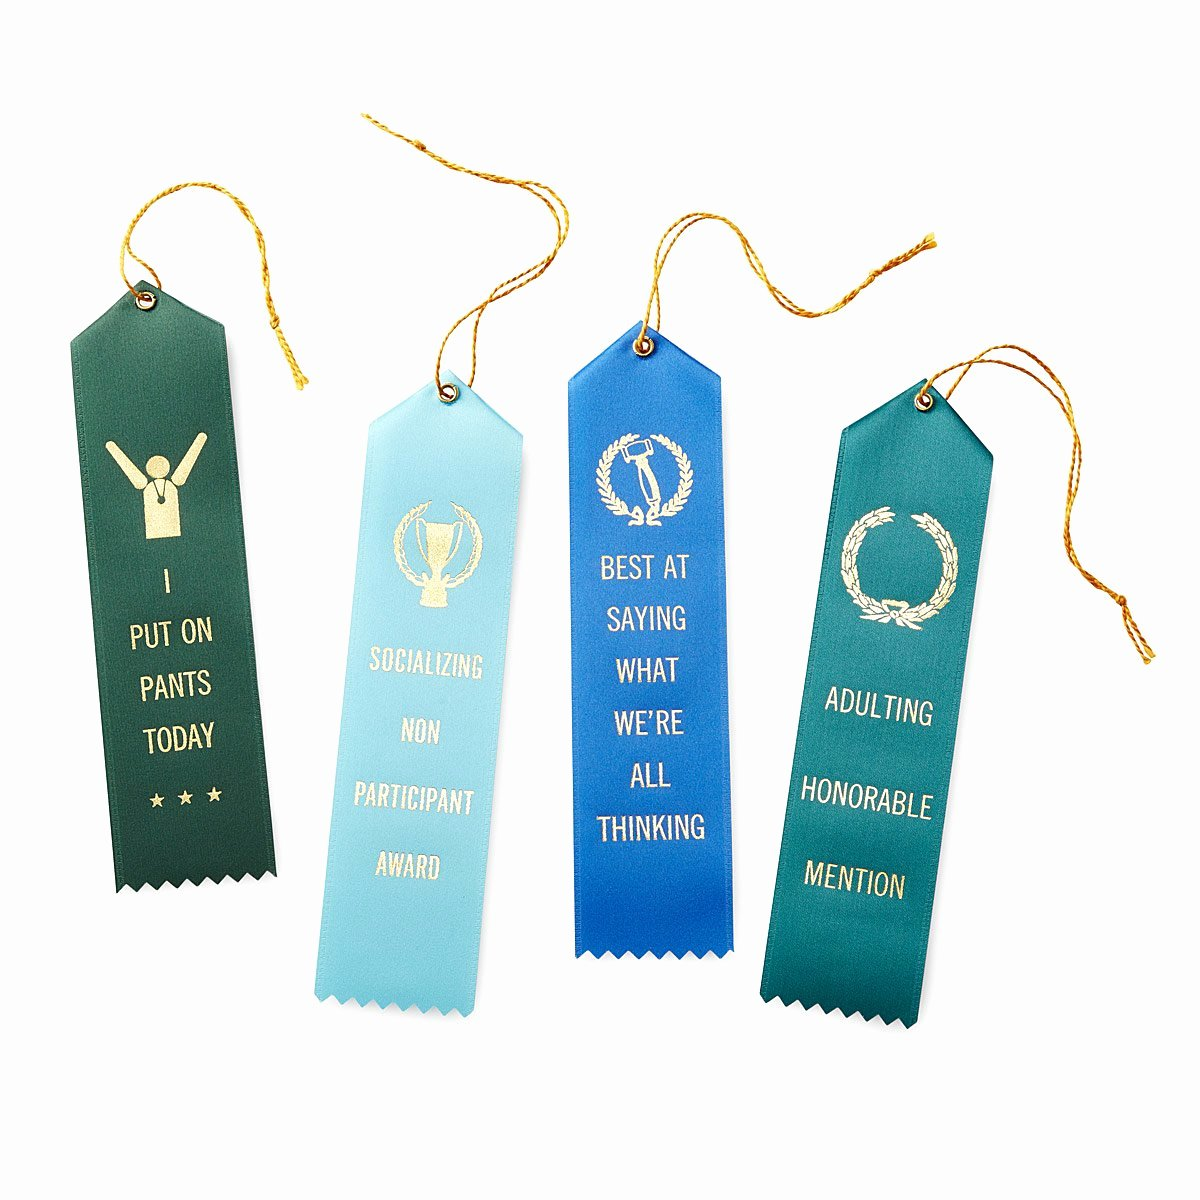 Funny Trophy Ideas for Work Fresh Adult Award Ribbons Adult Award Ribbons